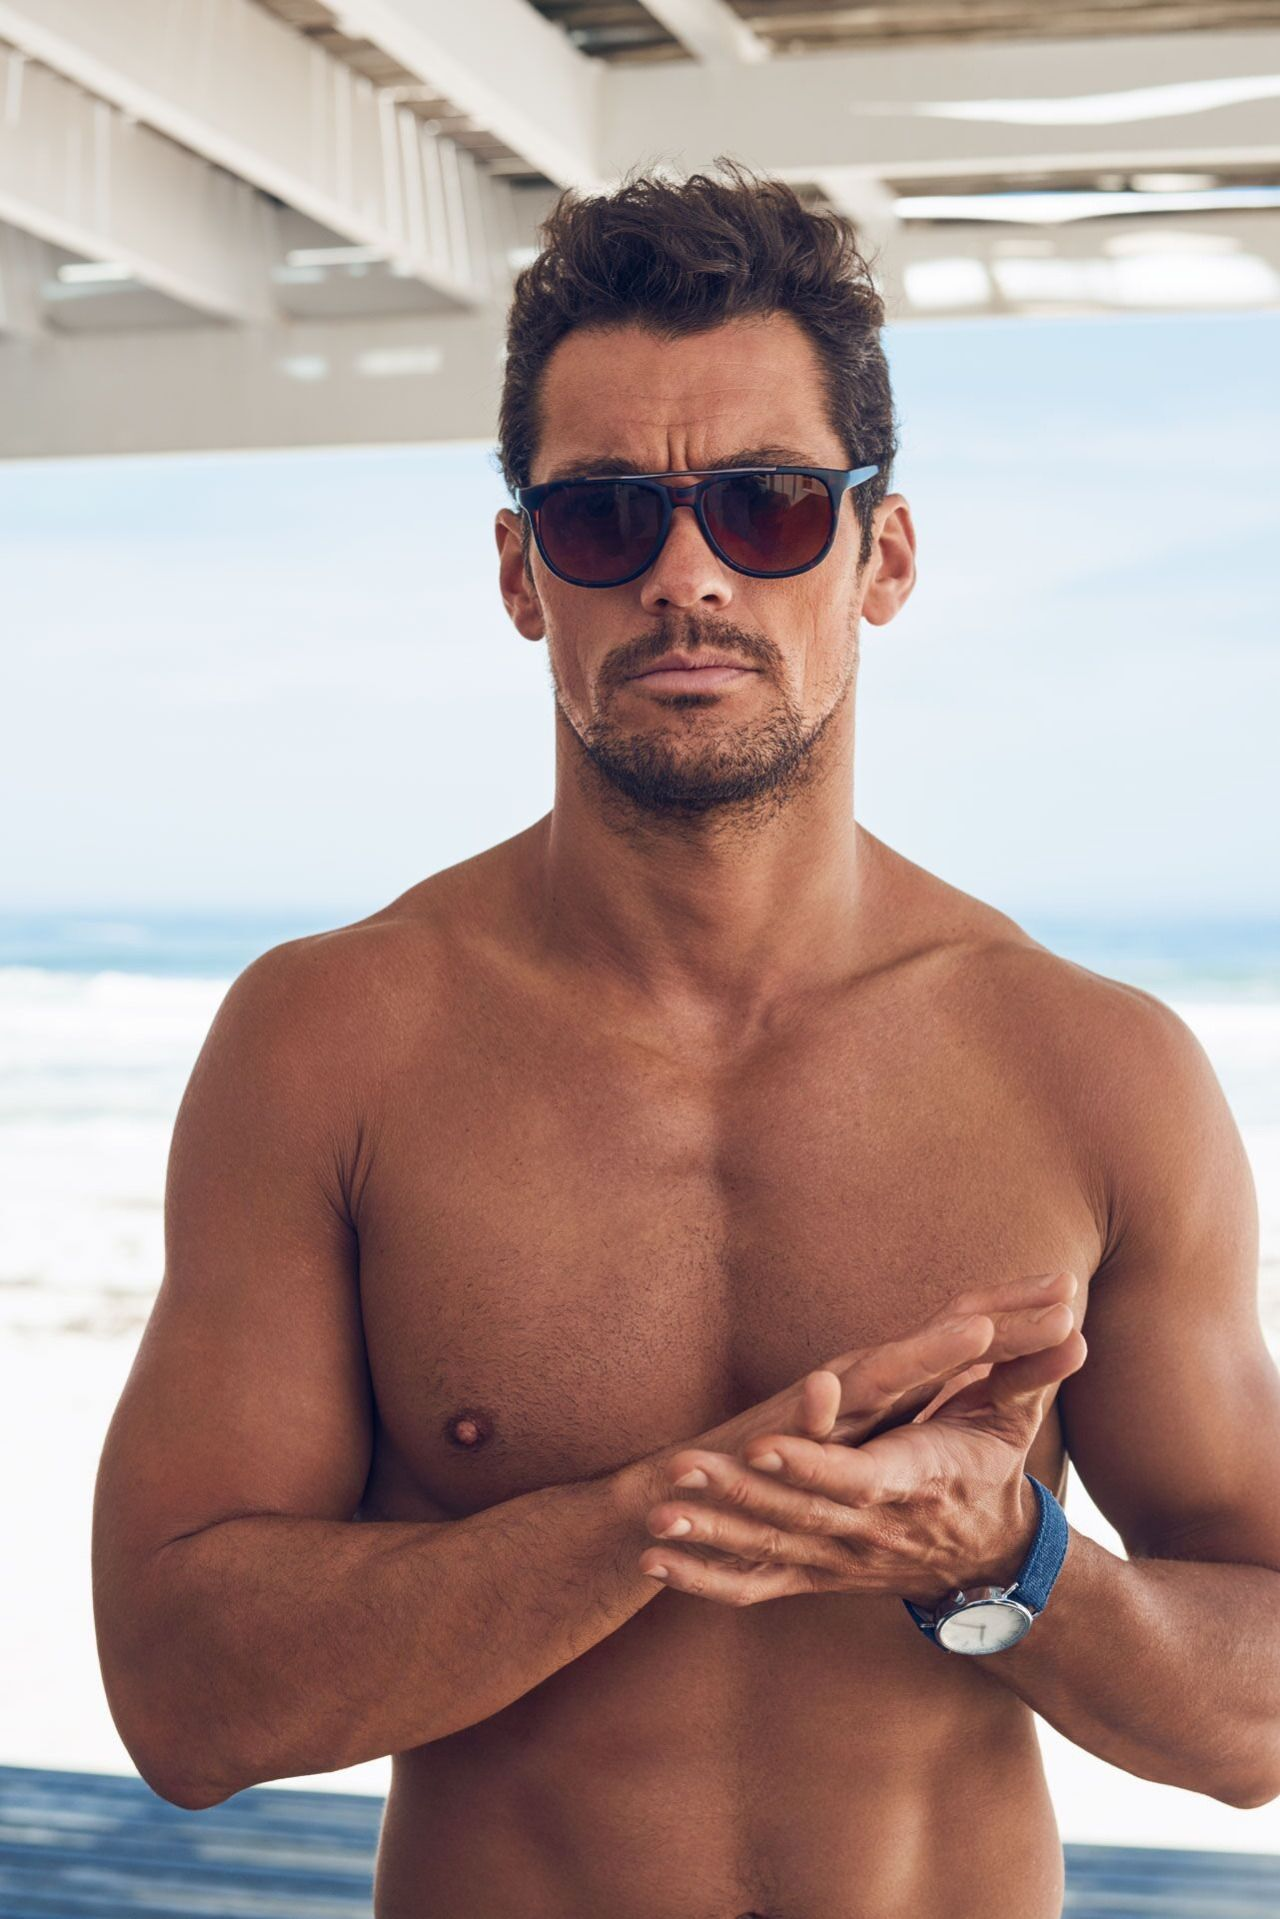 d986a6d871df5 A few more amazing shots of David Gandy's Gandy for Autograph S/S 2016 swim  shorts for Marks and Spencer. Shop the collection HERE Photos by Tomo Brejc